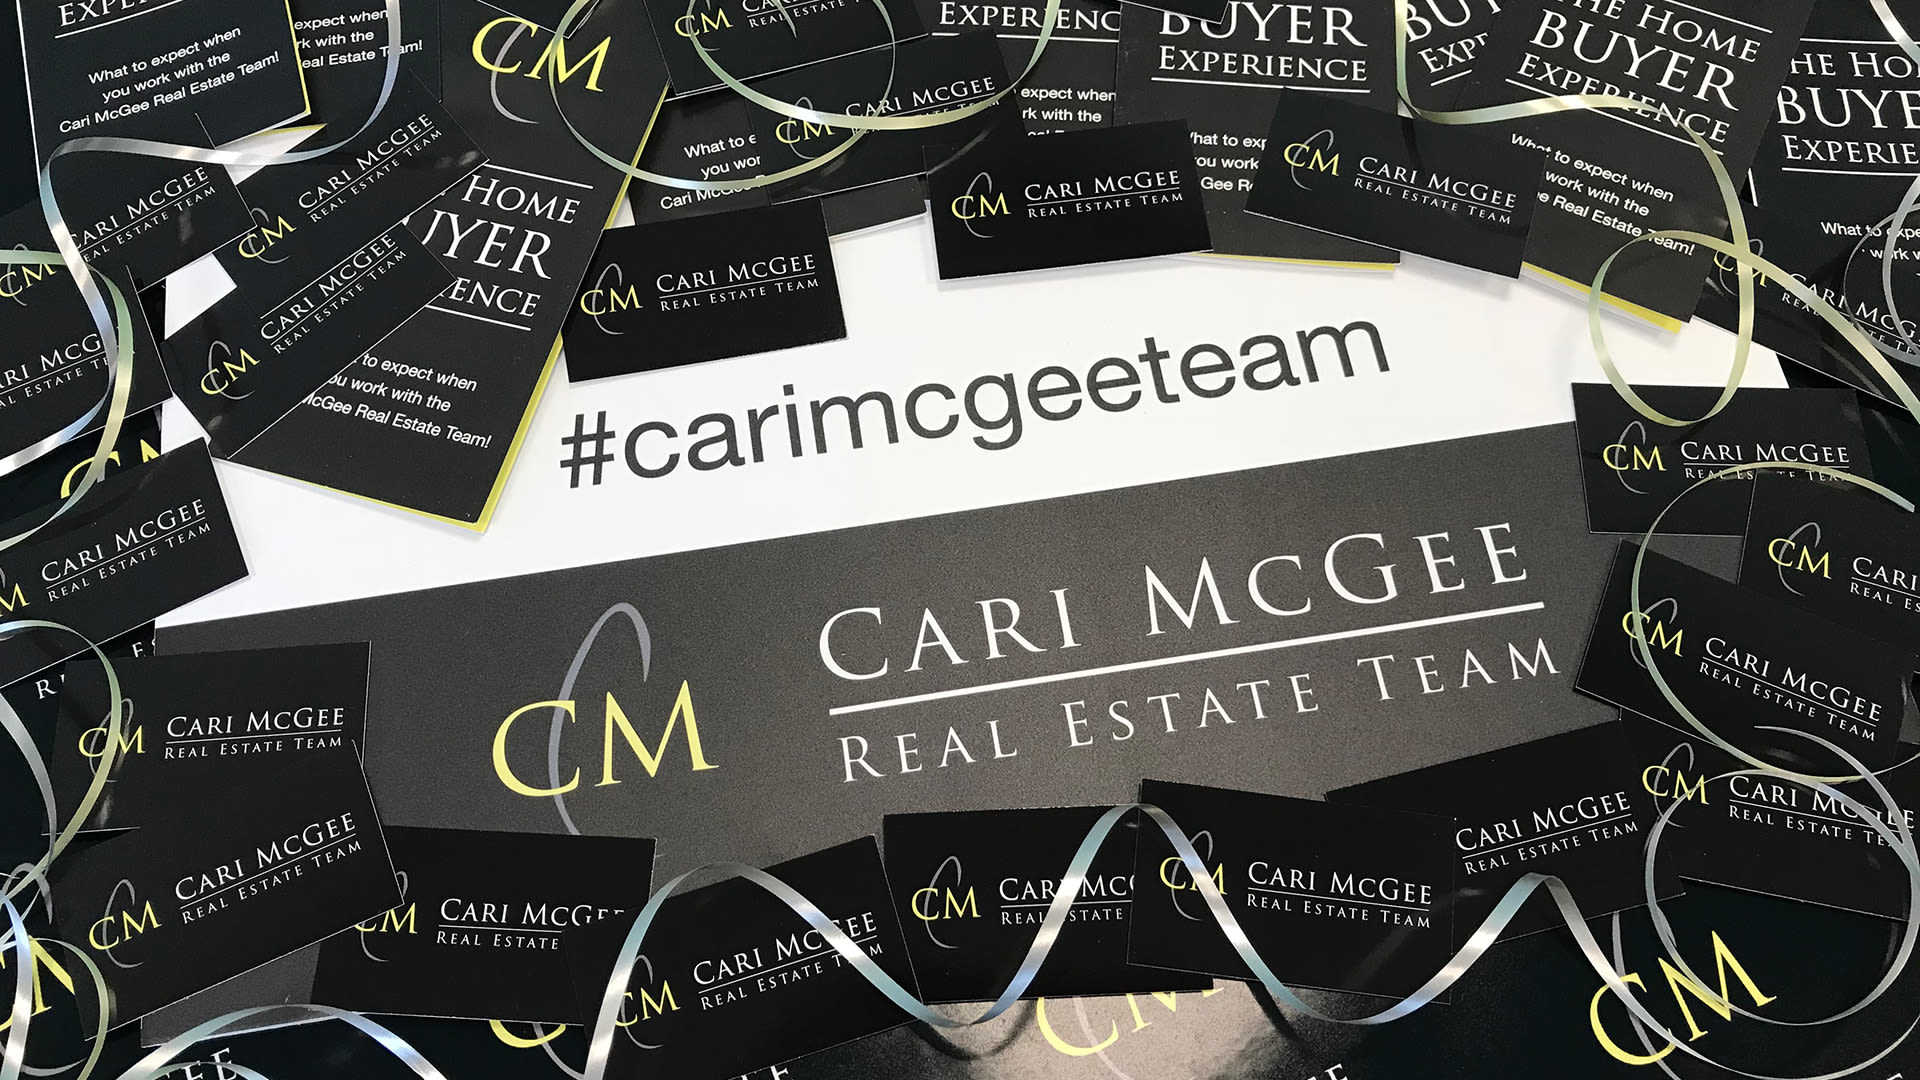 Monica Garcia has joined the Cari McGee Real Estate Team!